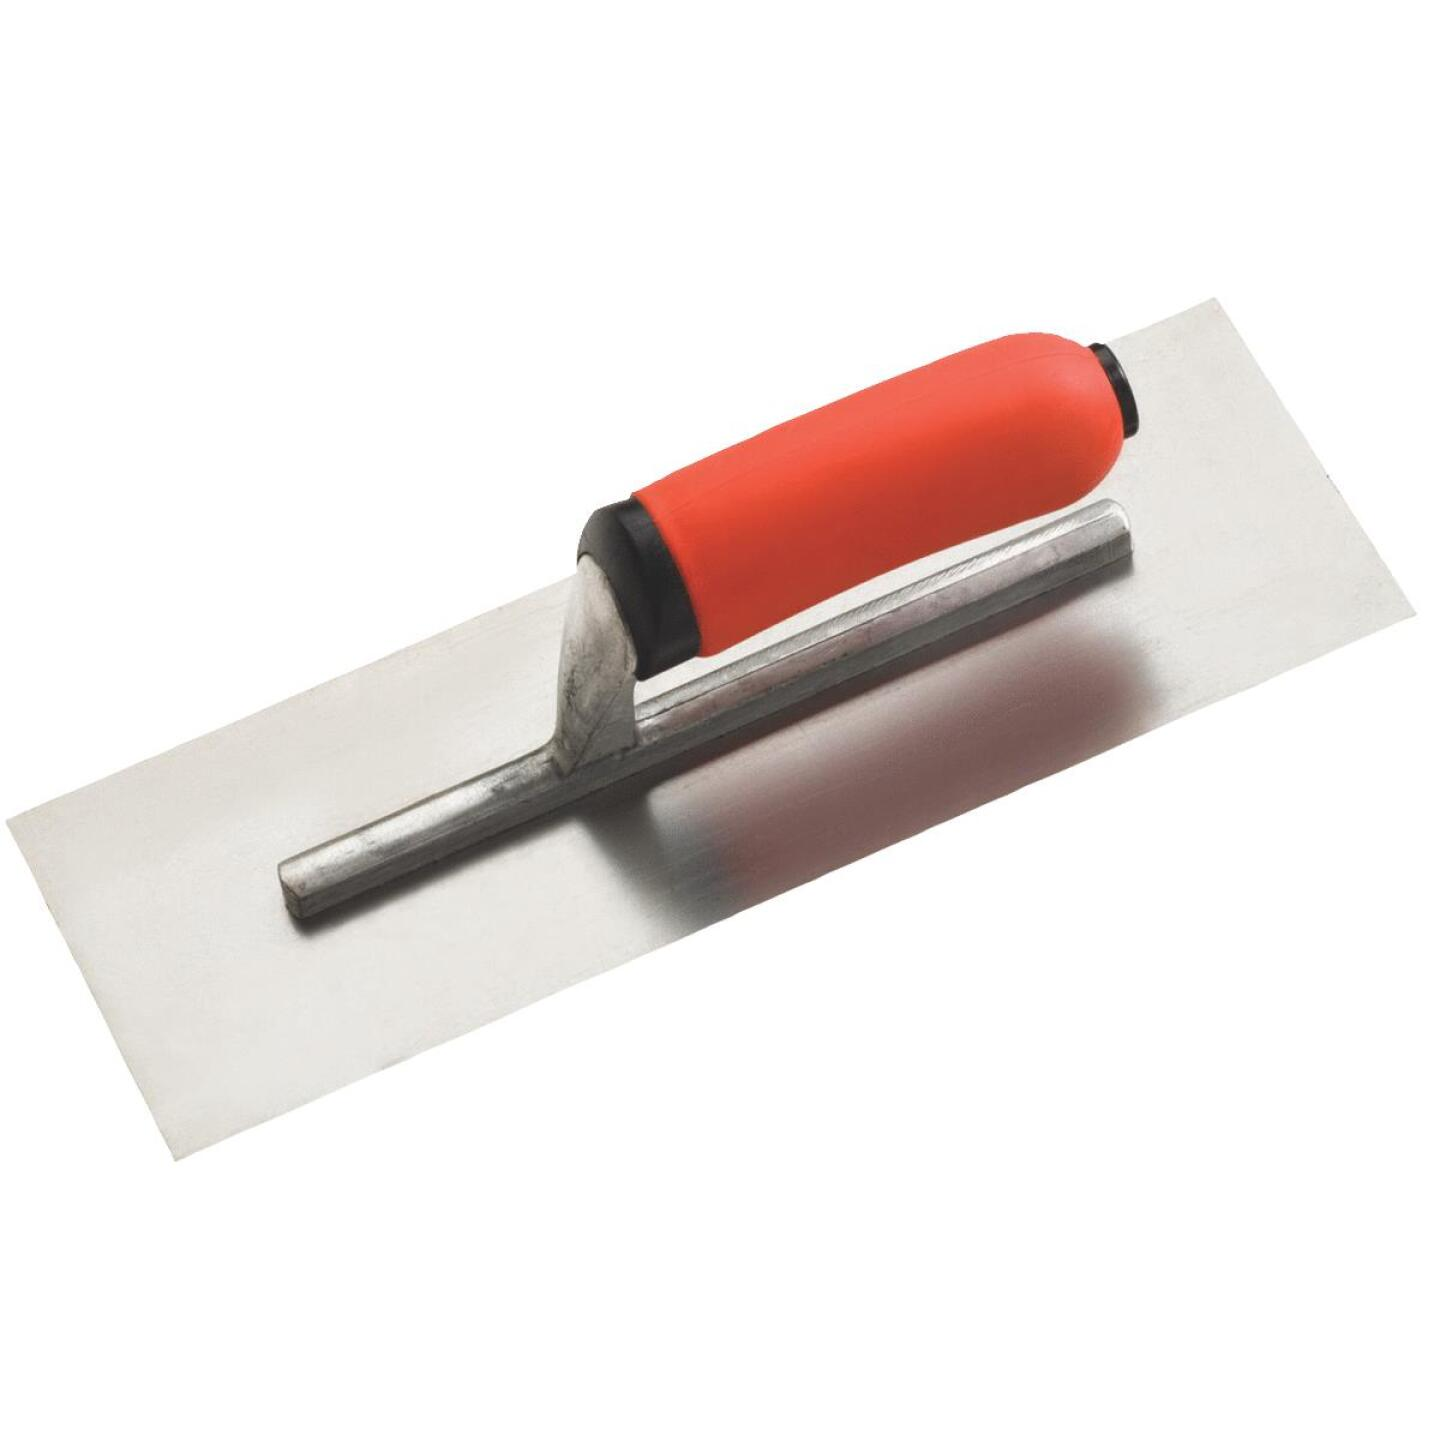 Do it Best 4 In. x 12 In. Finishing Trowel with Ergo Handle Image 1